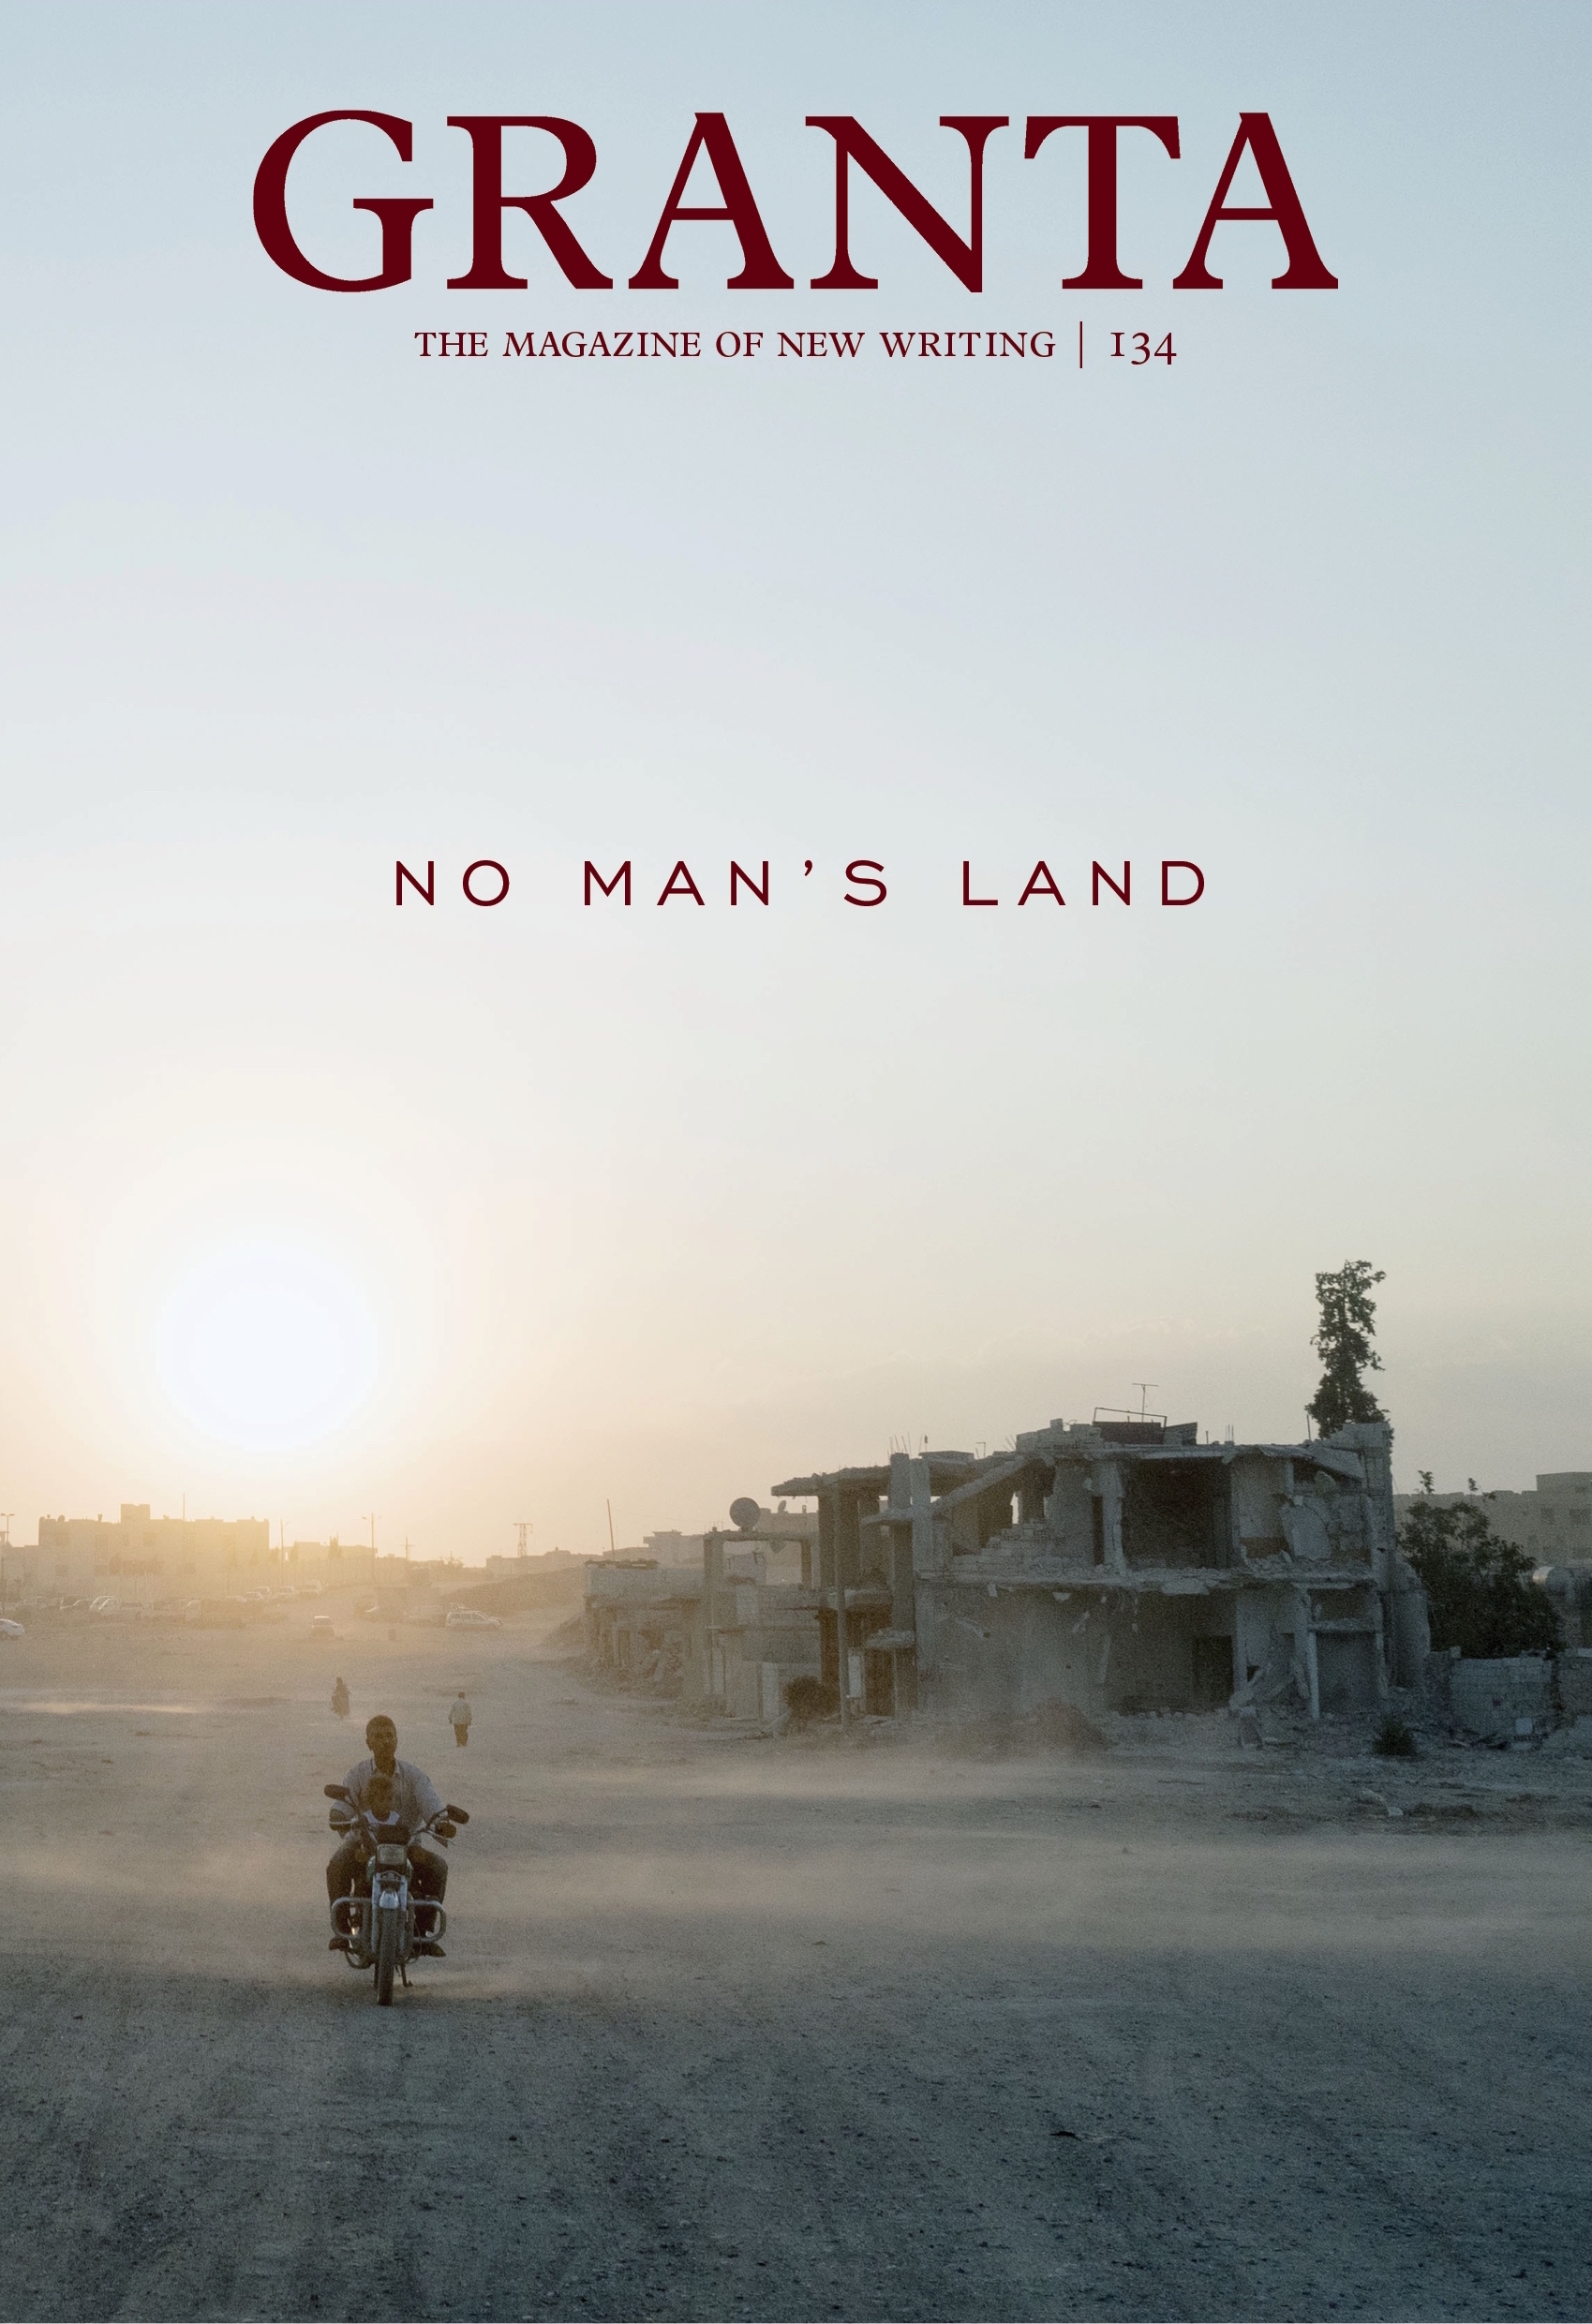 Granta - No Man's Land